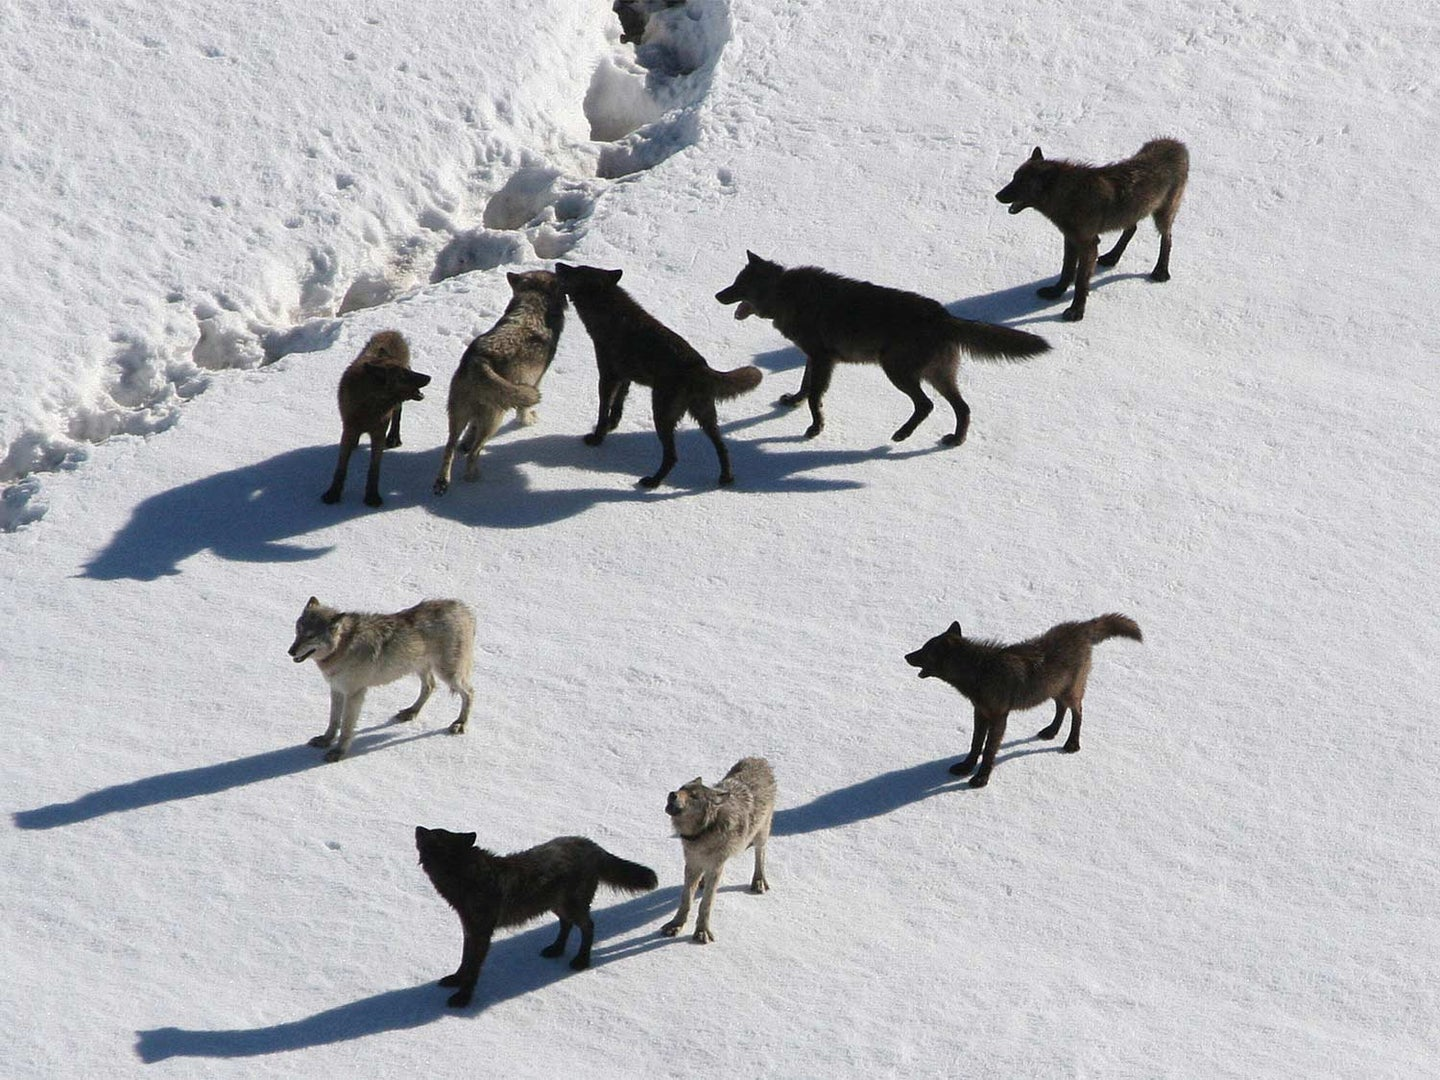 Wolves in the snow at Yellowstone Park